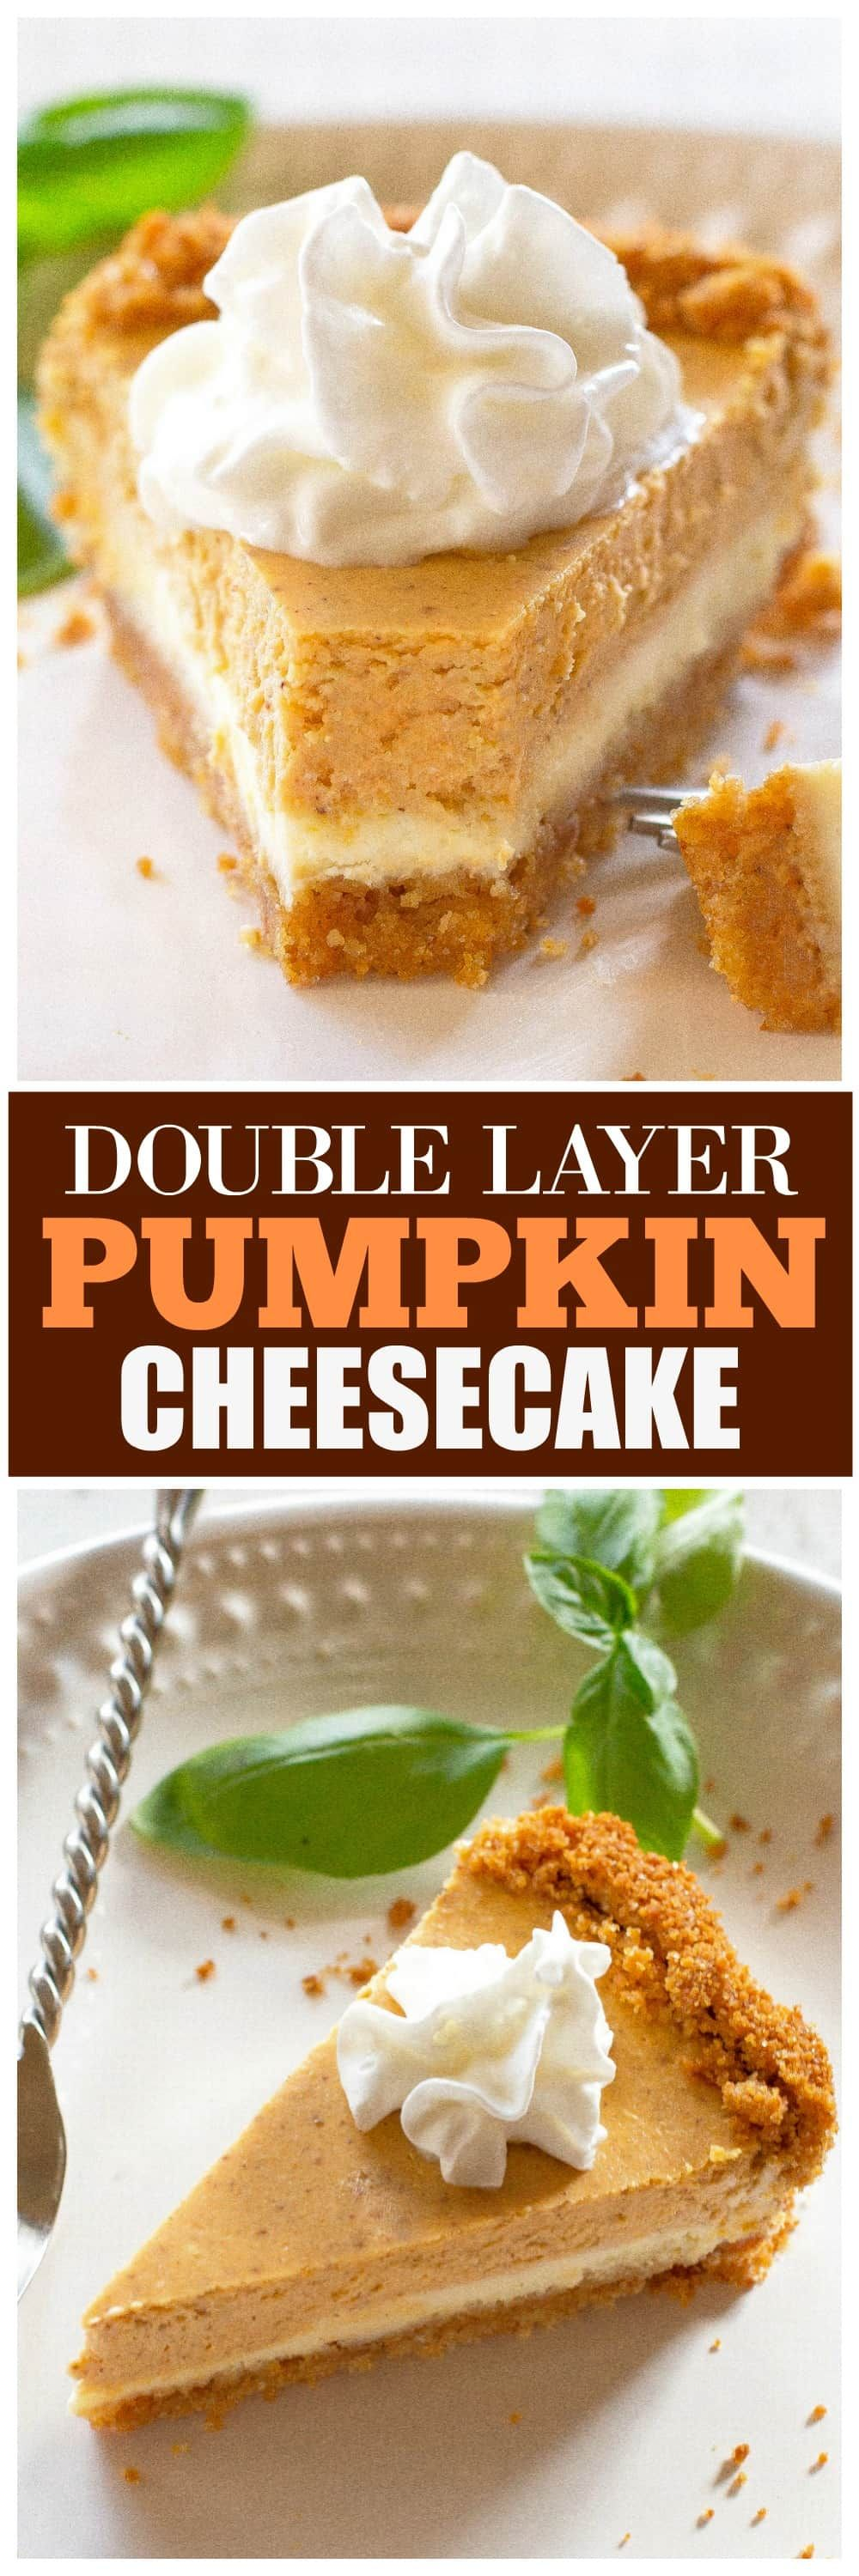 Double Layer Pumpkin Cheesecake – The Girl Who Ate Everything